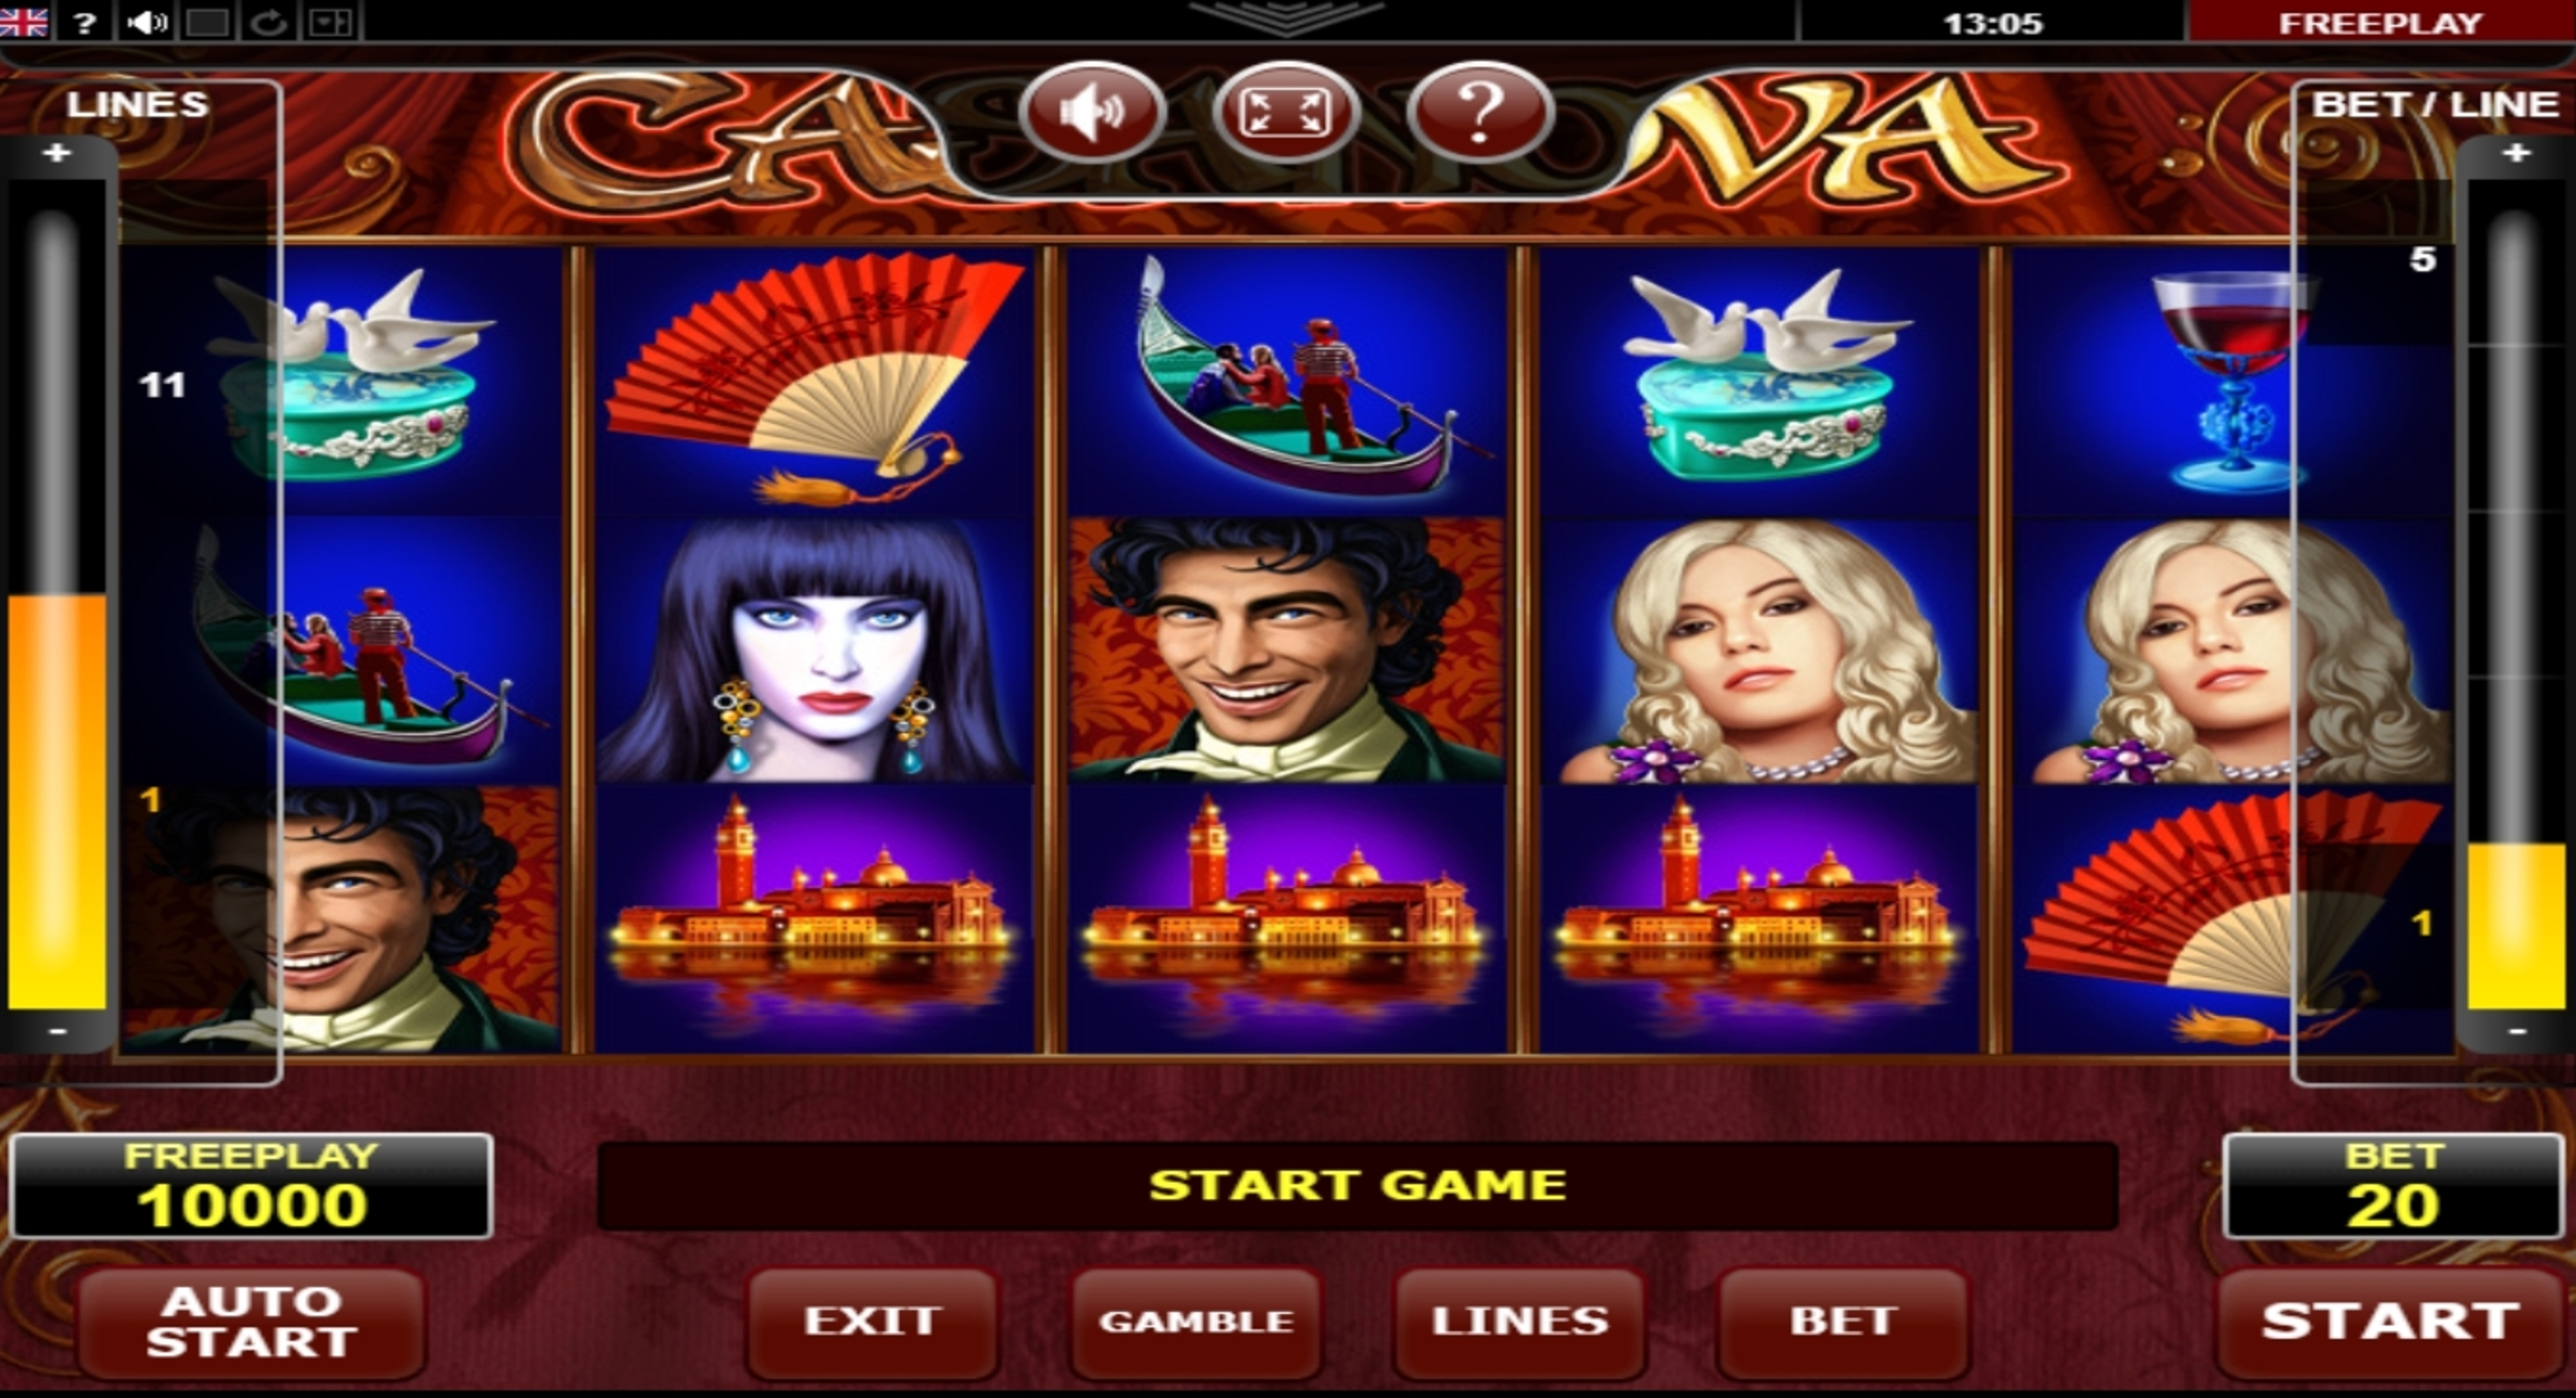 Reels in Casanova Slot Game by Amatic Industries